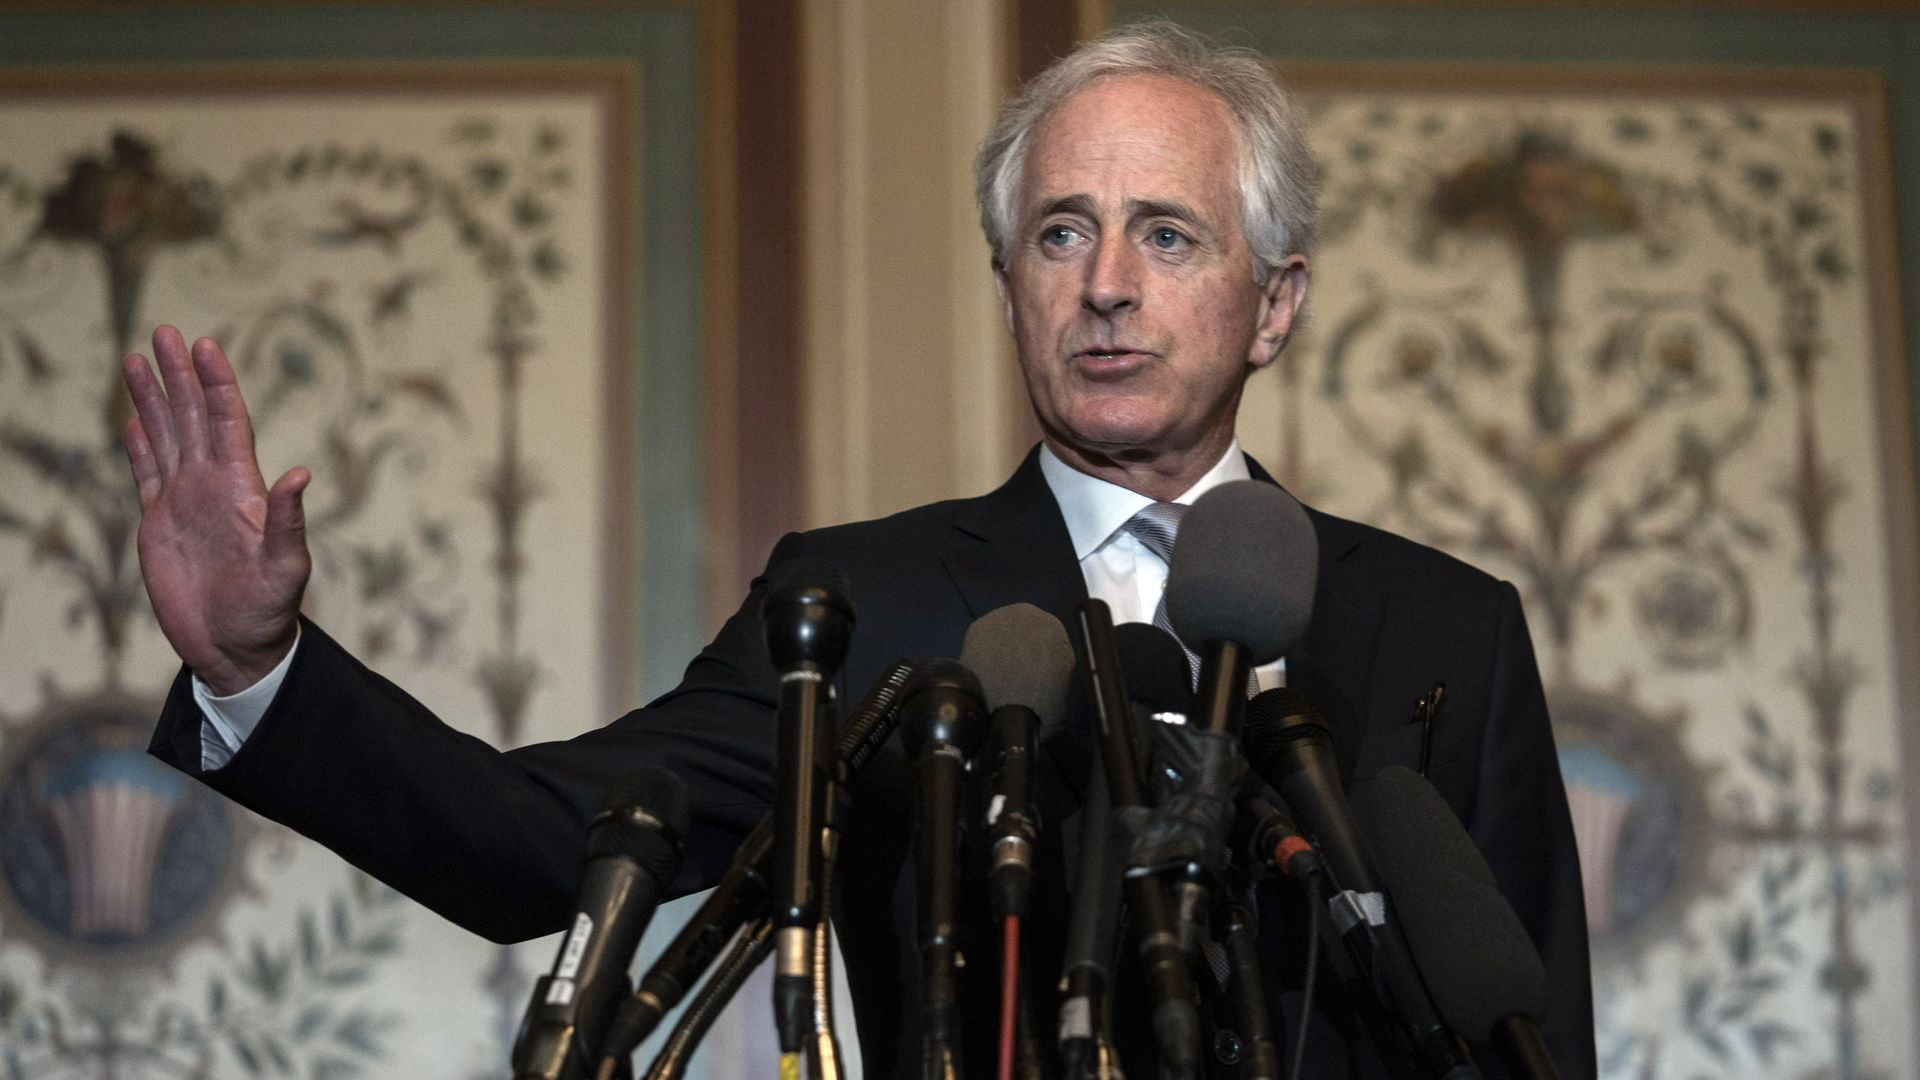 Bob Corker speaking at a podium.